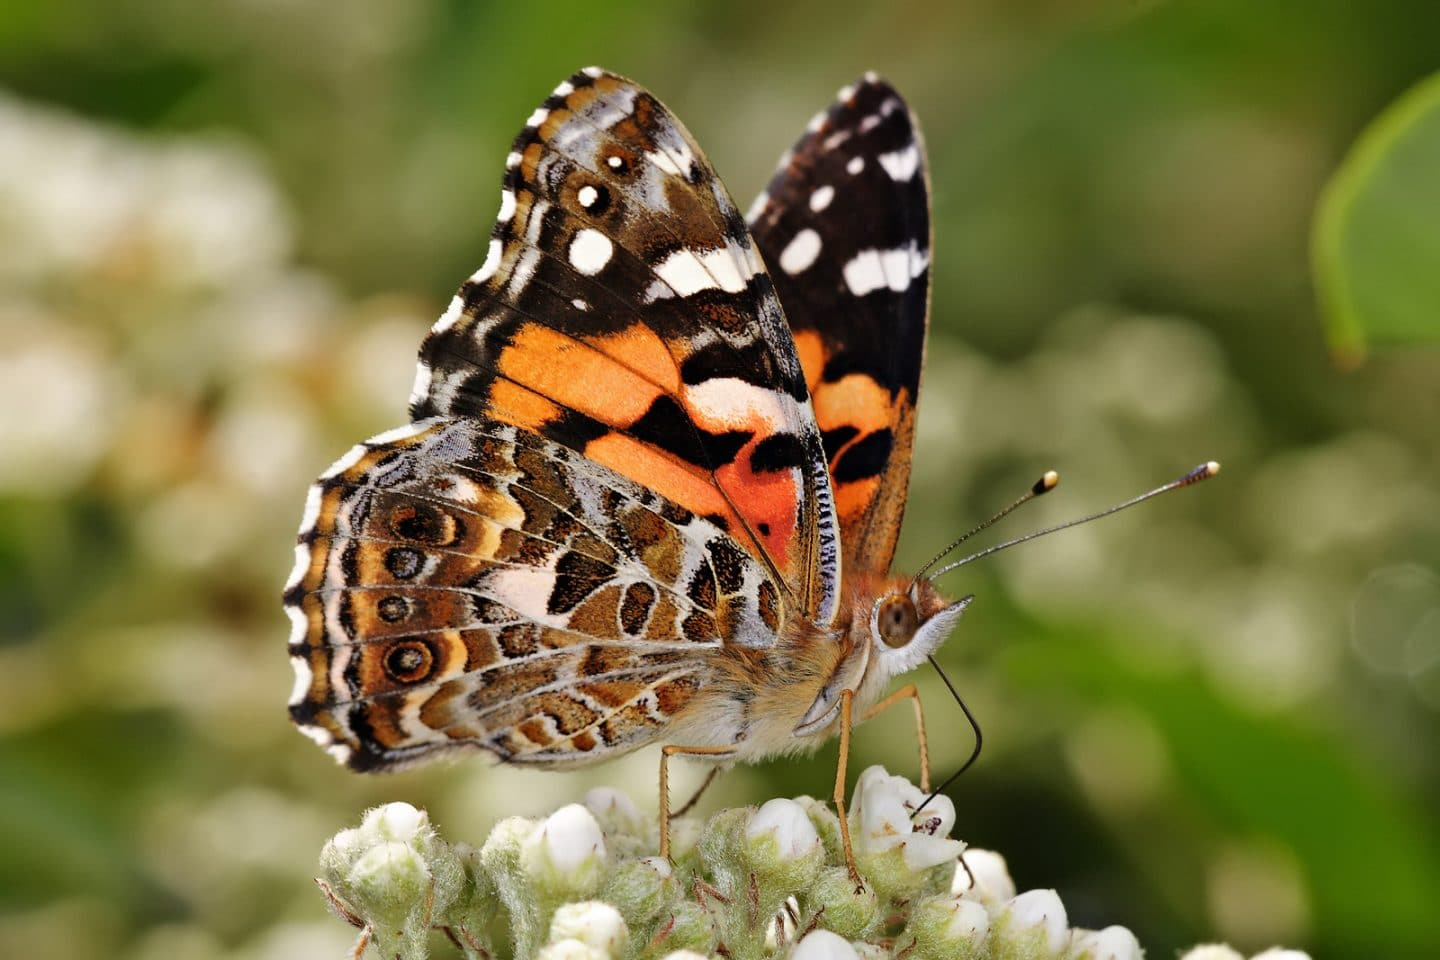 Keep An Eye Out For The Vast Amount Of Butterflies Who've Arrived In SoCal